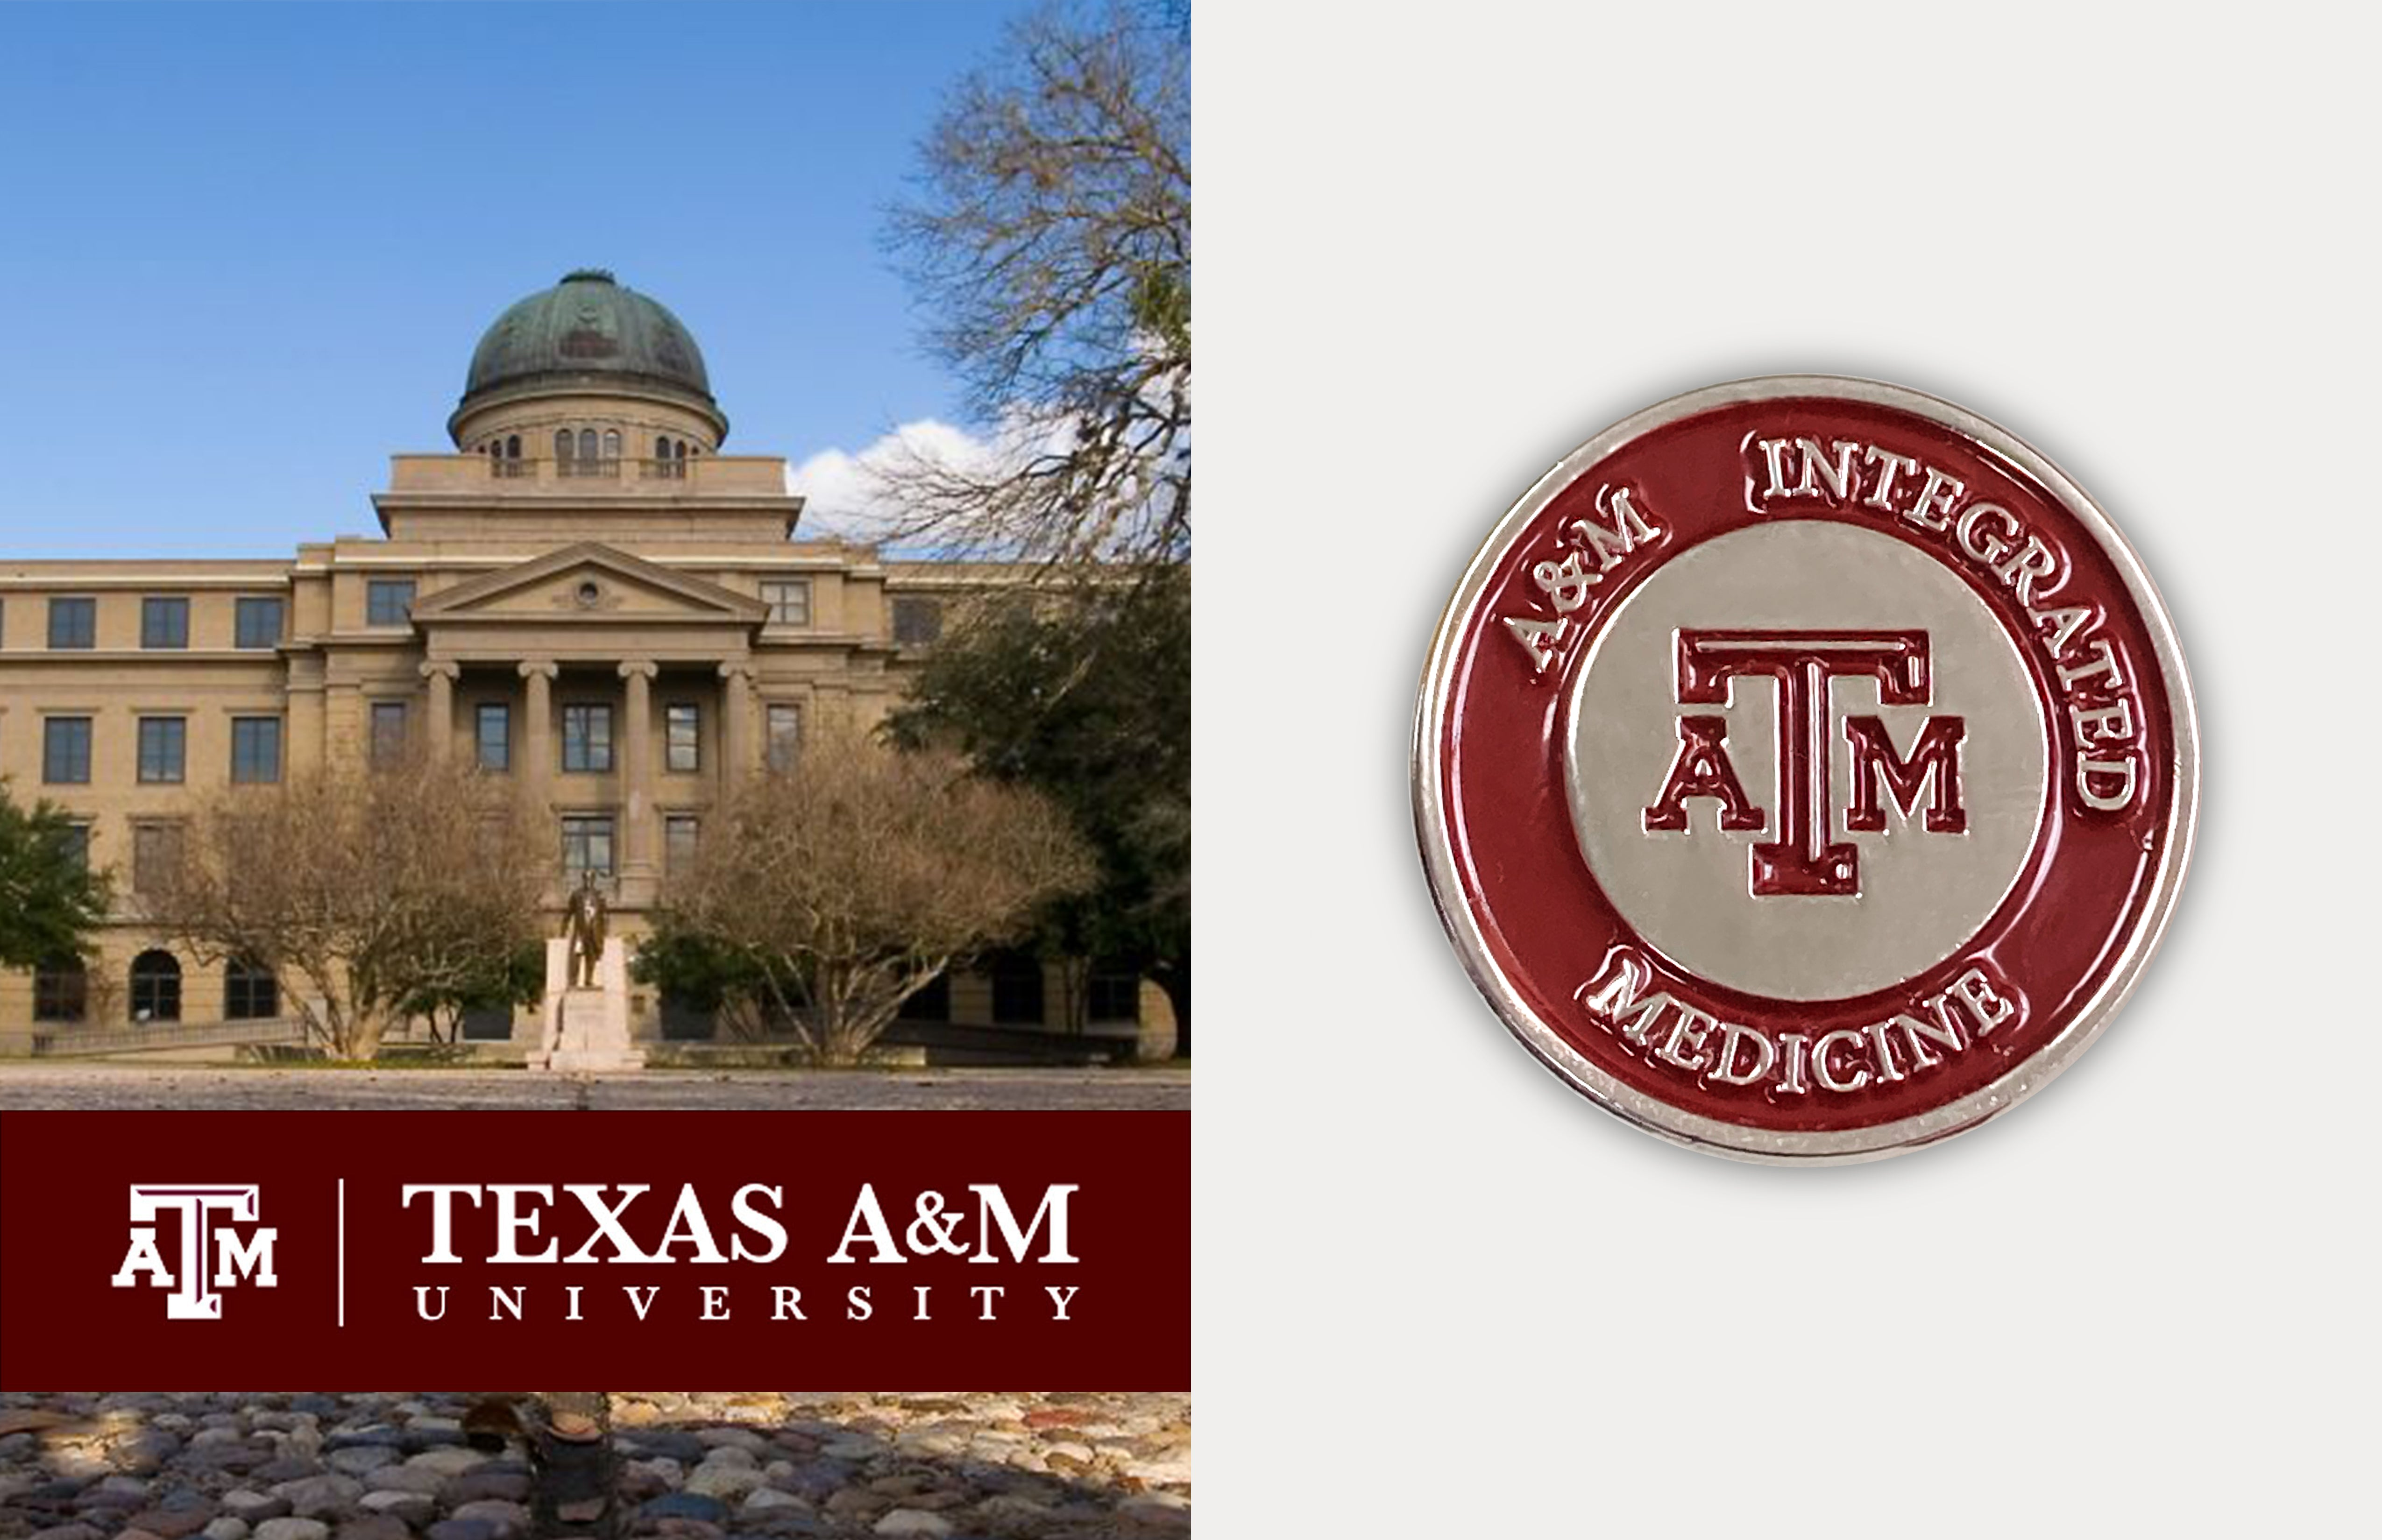 College - Texas A&M University